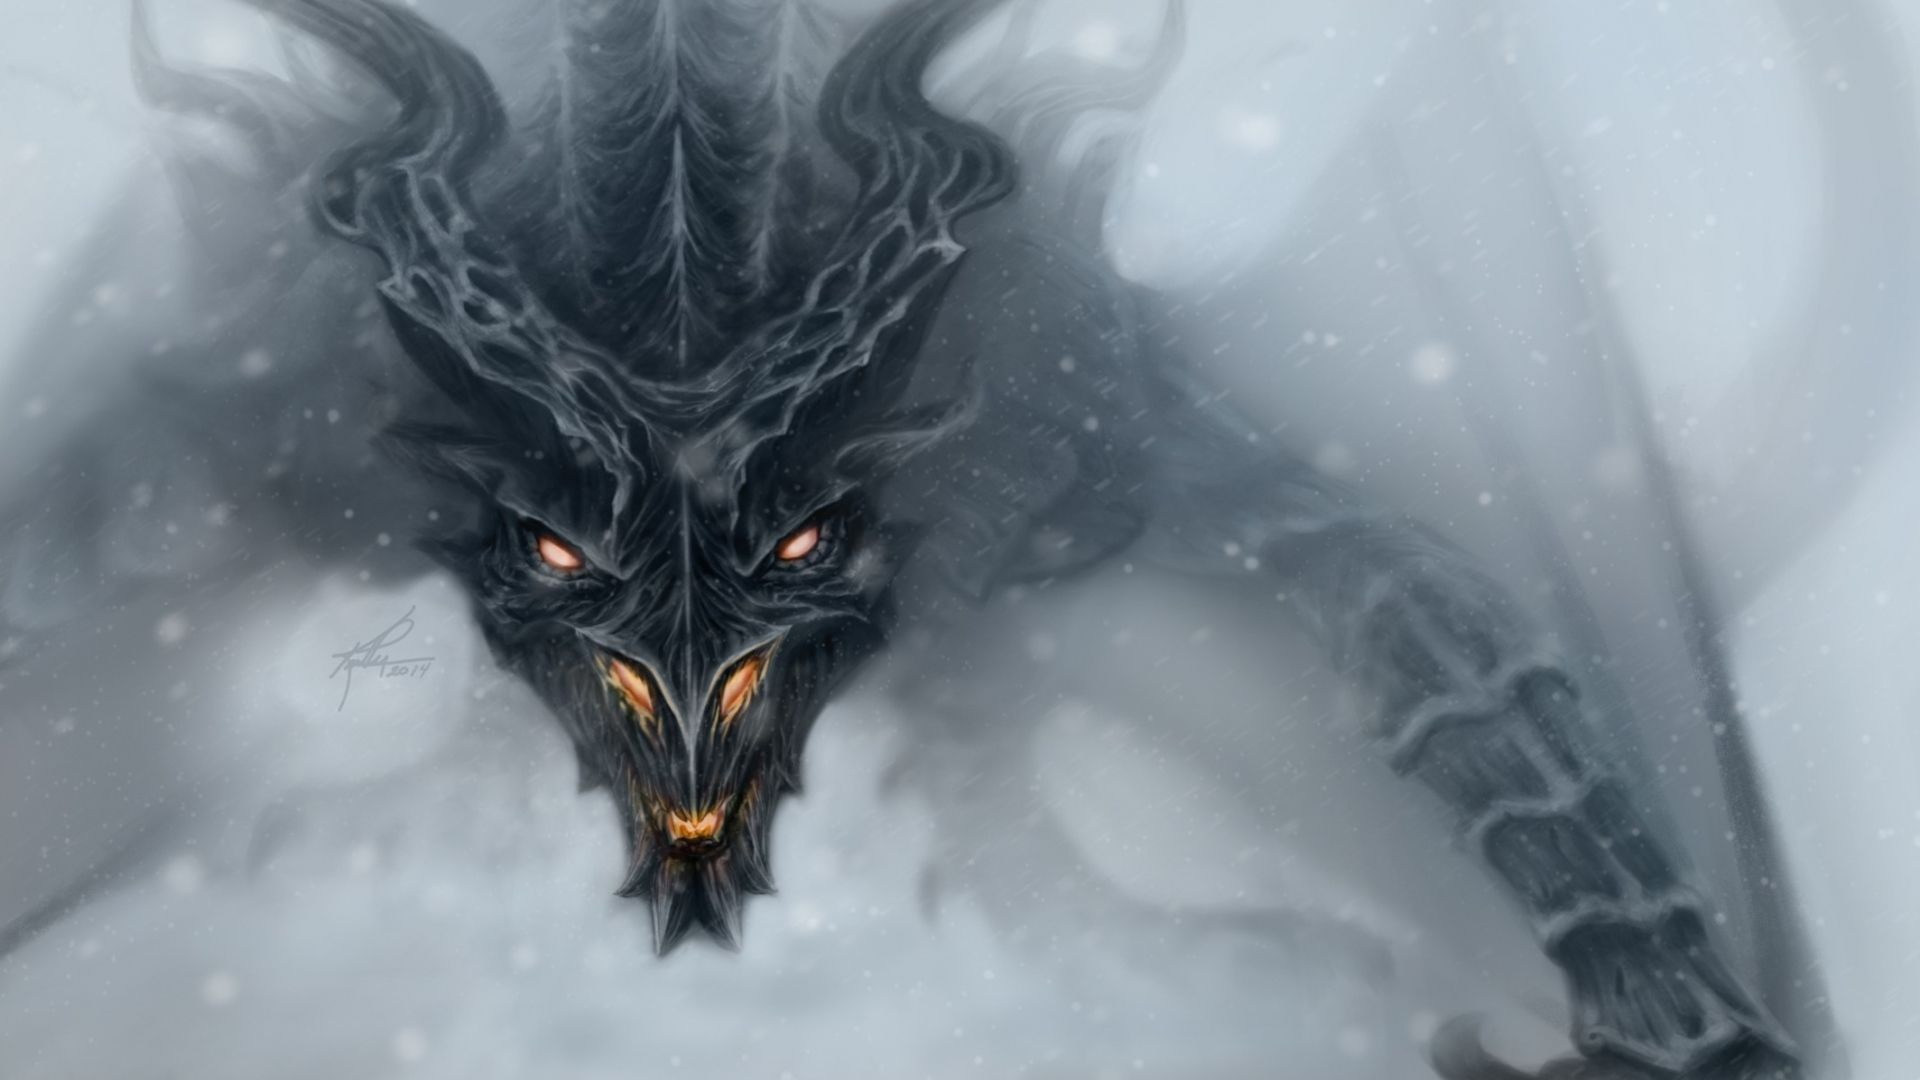 Dragon Face Wallpapers Top Free Dragon Face Backgrounds